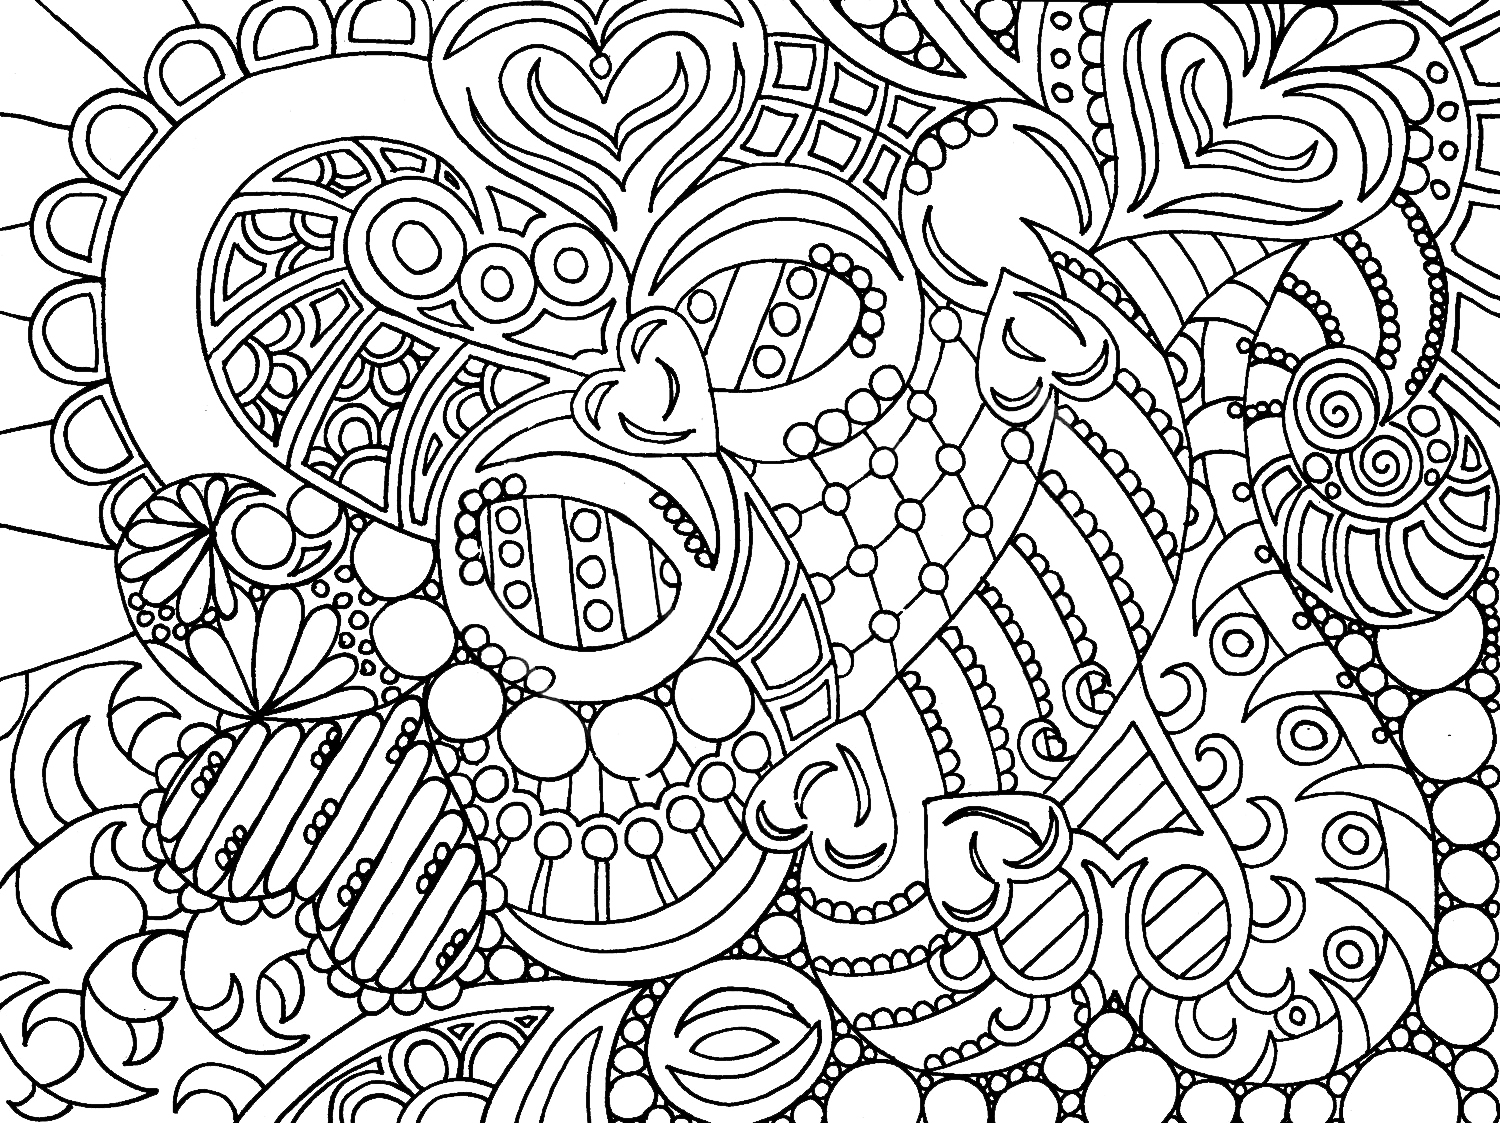 Free coloring pages for adults only coloring pages for Coloring pages to color online for free